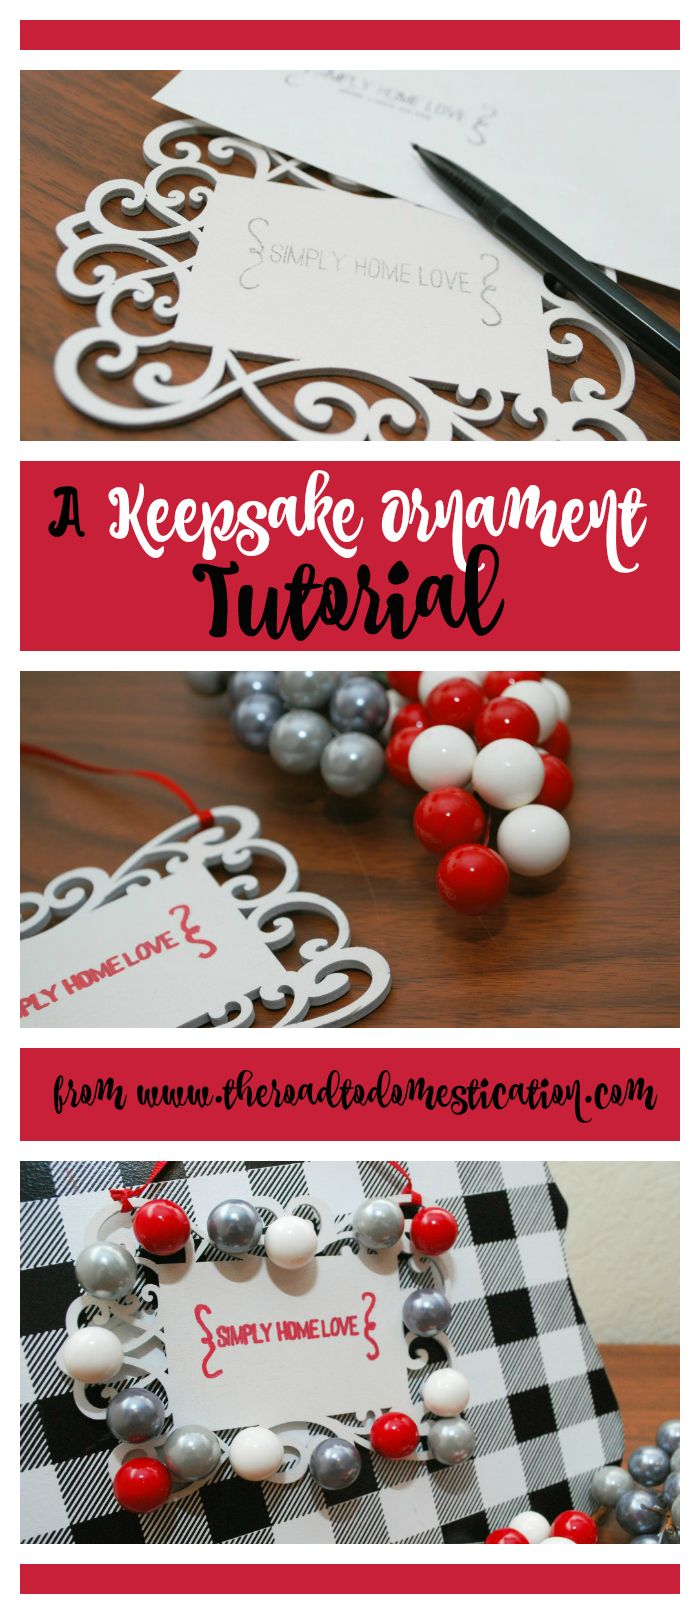 A how-to on making an ornament...and links to 80+ additional ornament tutorials!